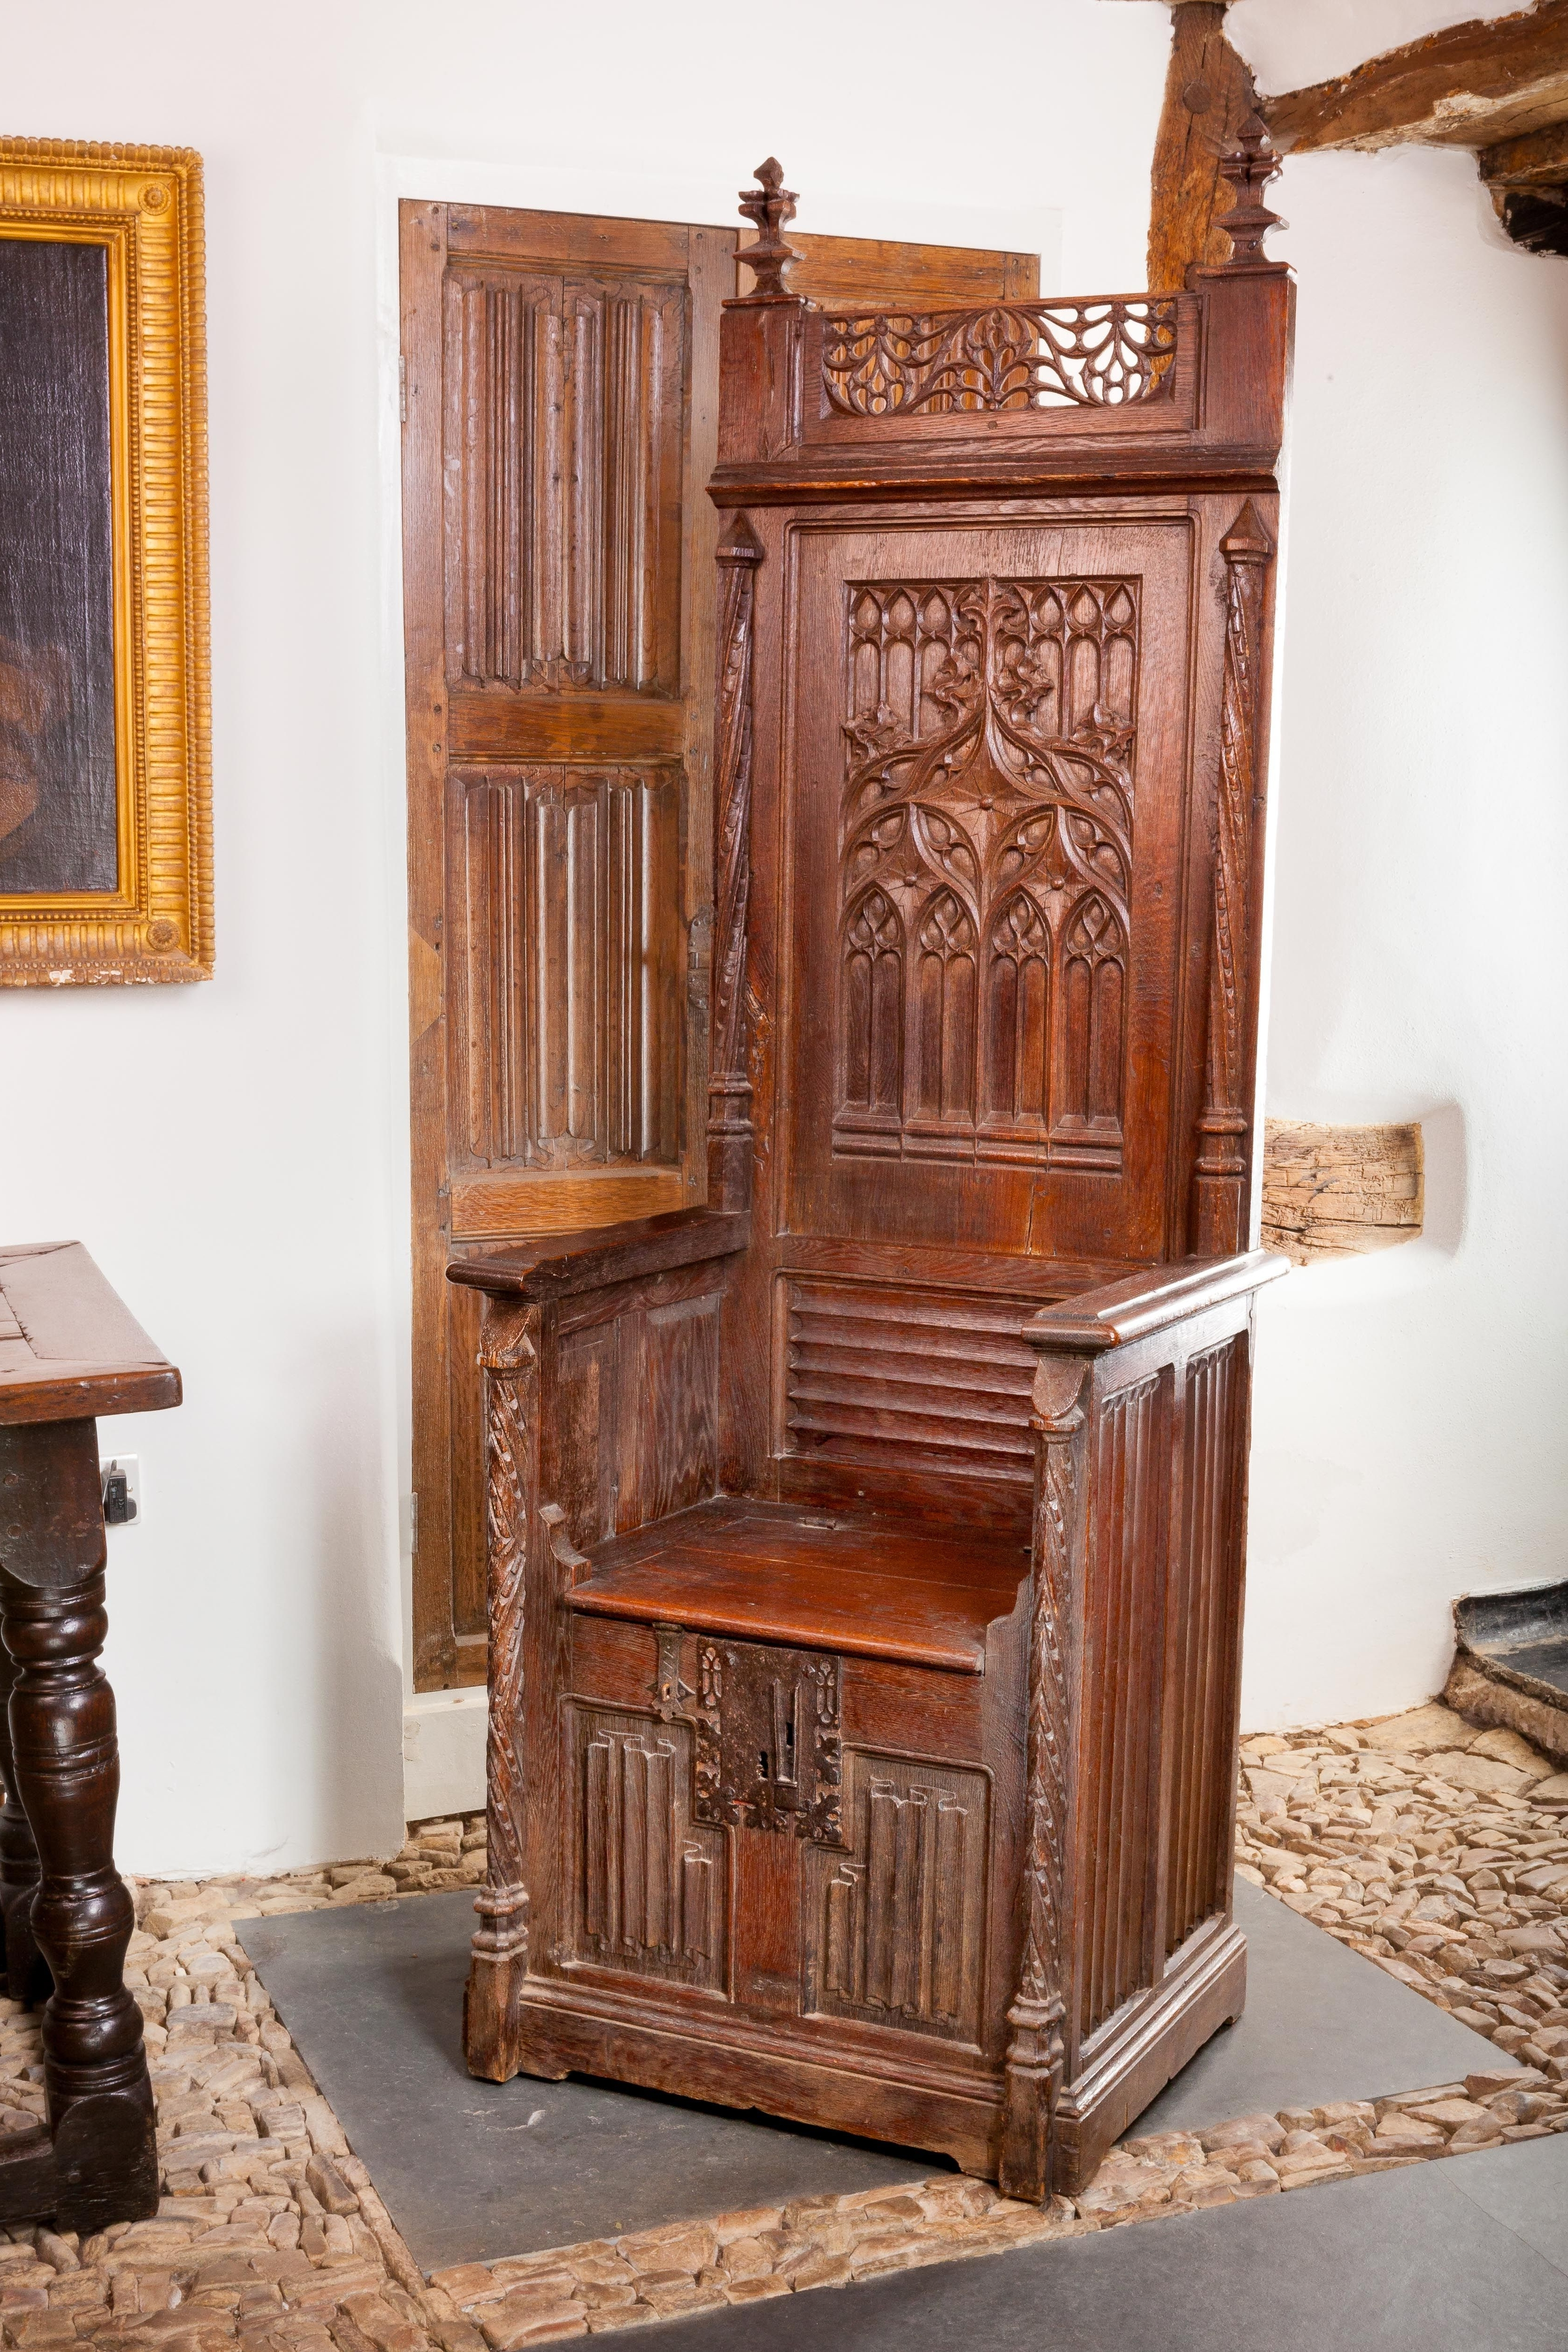 Preferred Gothic Throne Chair, Circa 1460 – 1480, Marhamchurch Antiques With Regard To Gothic Sofas (View 16 of 20)